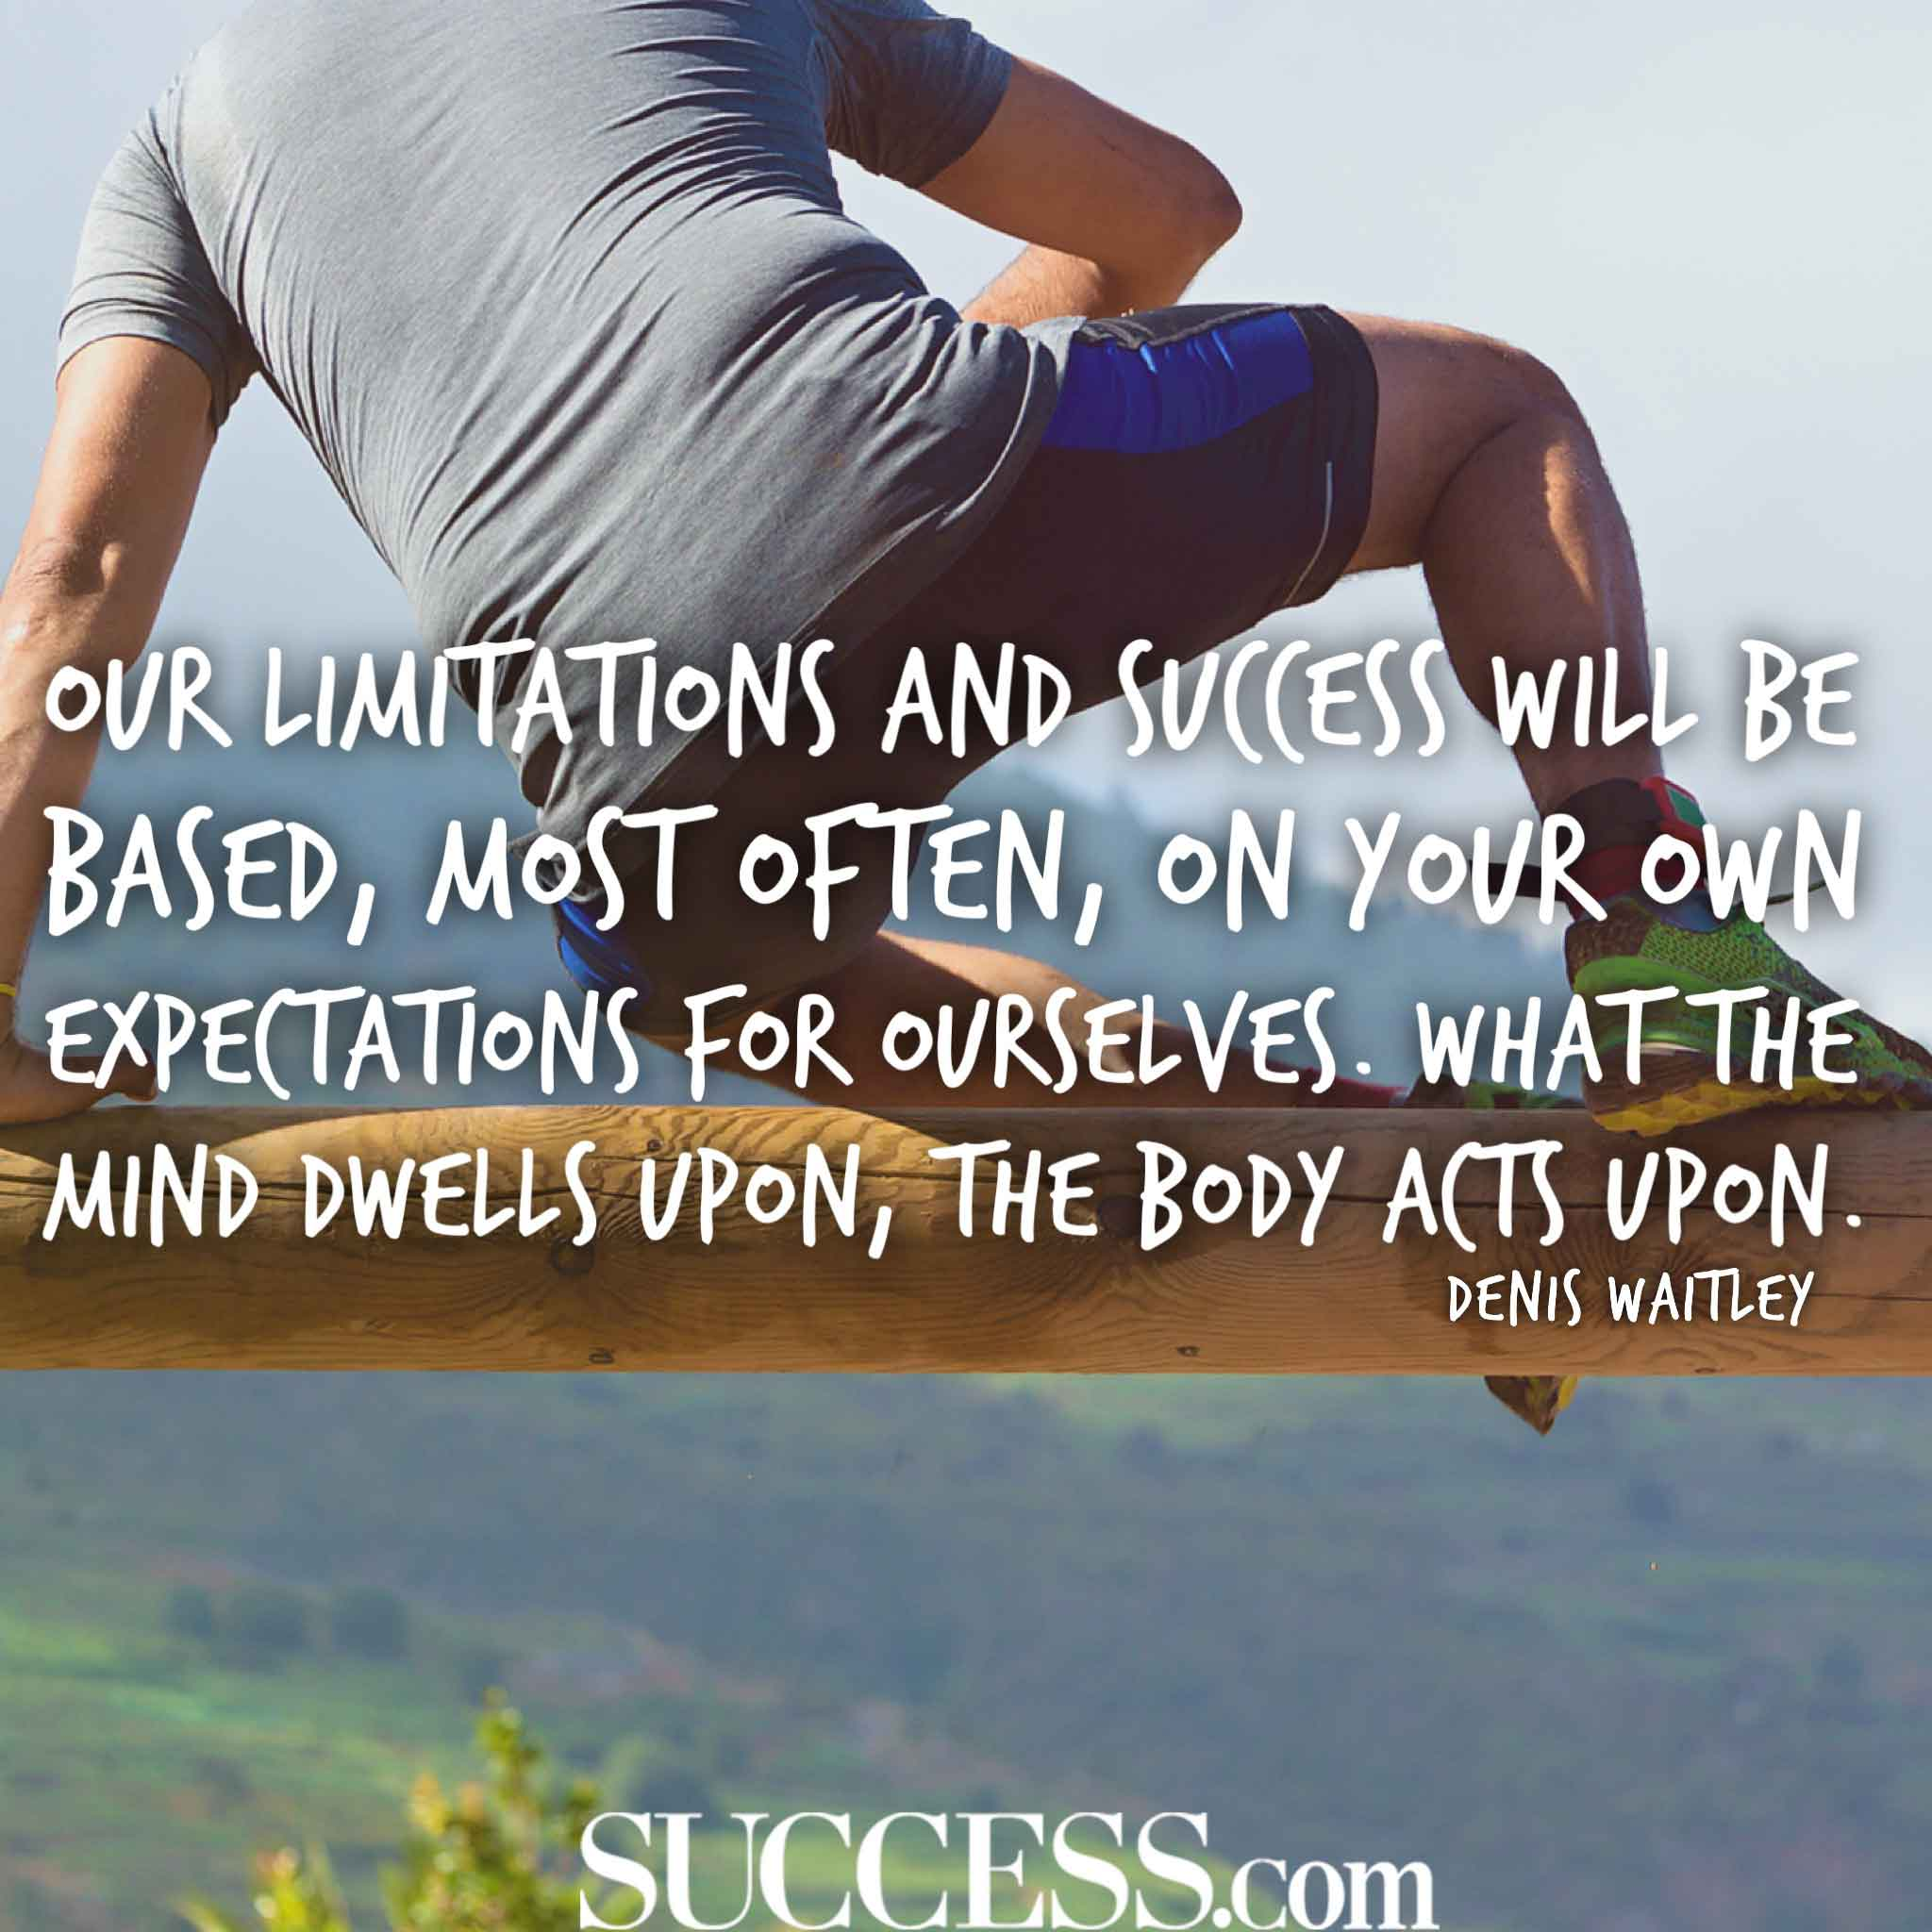 15 Quotes to Overcome Your Self-Limiting Beliefs